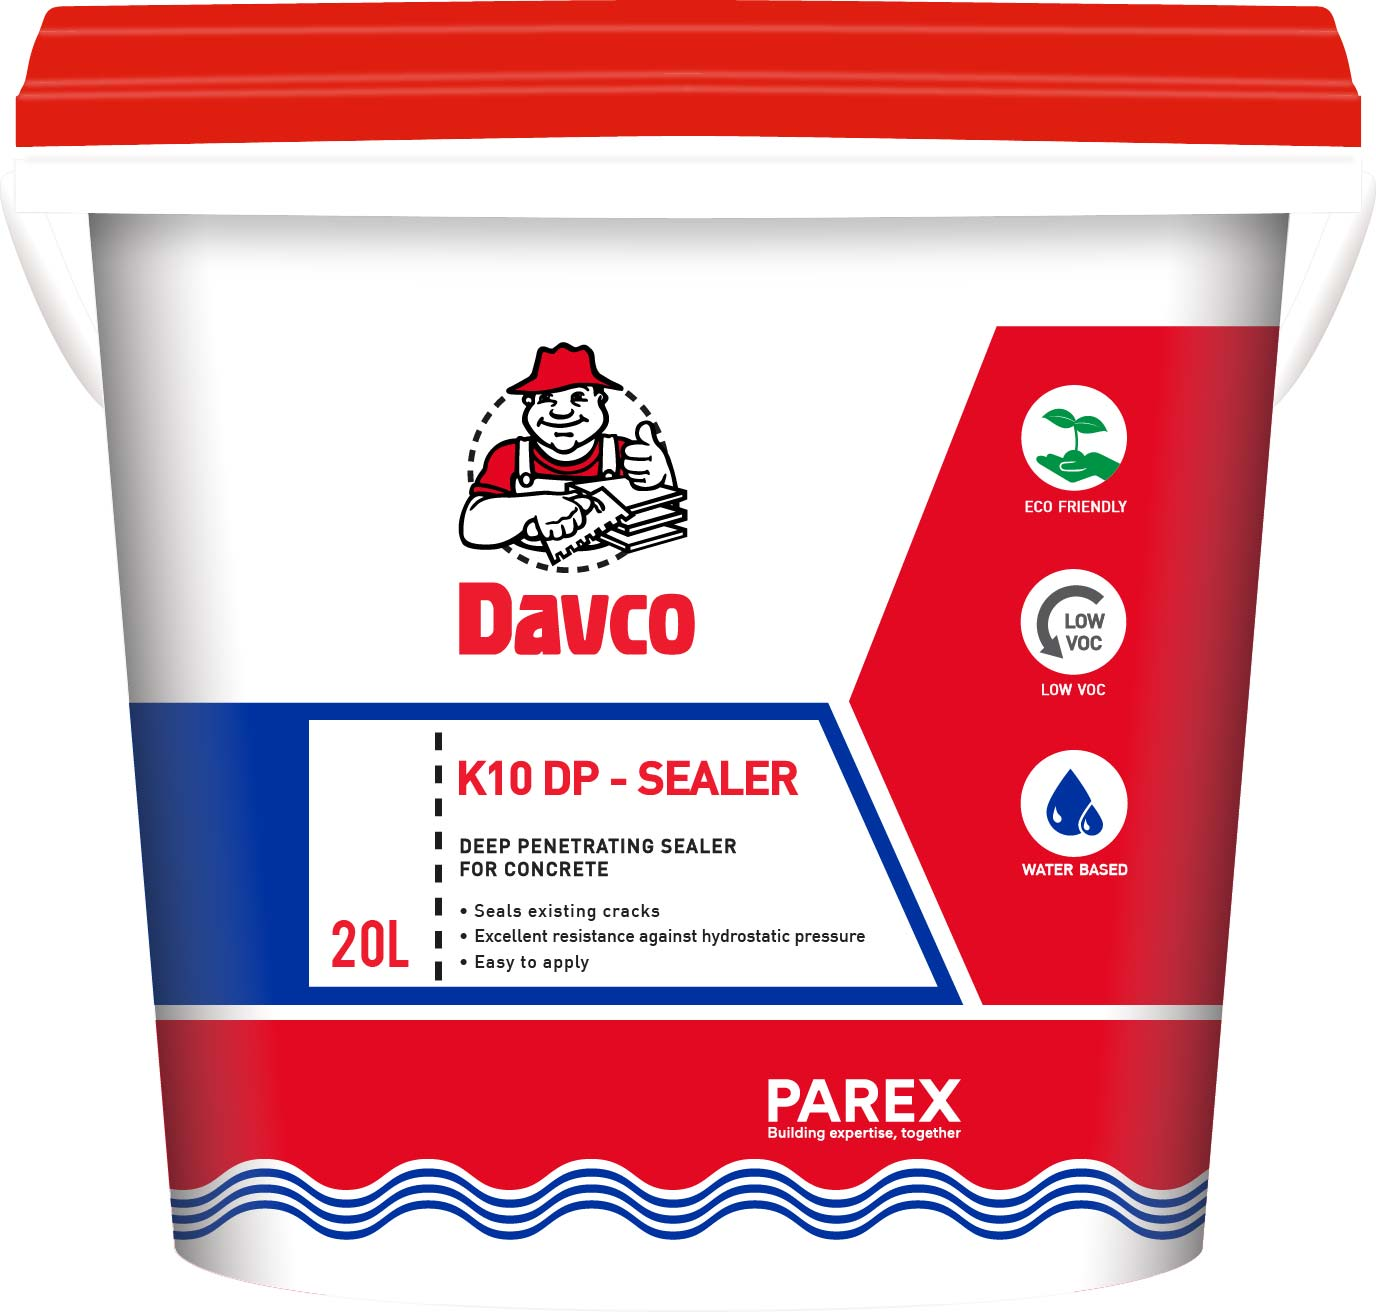 Davco K10 DP Sealer